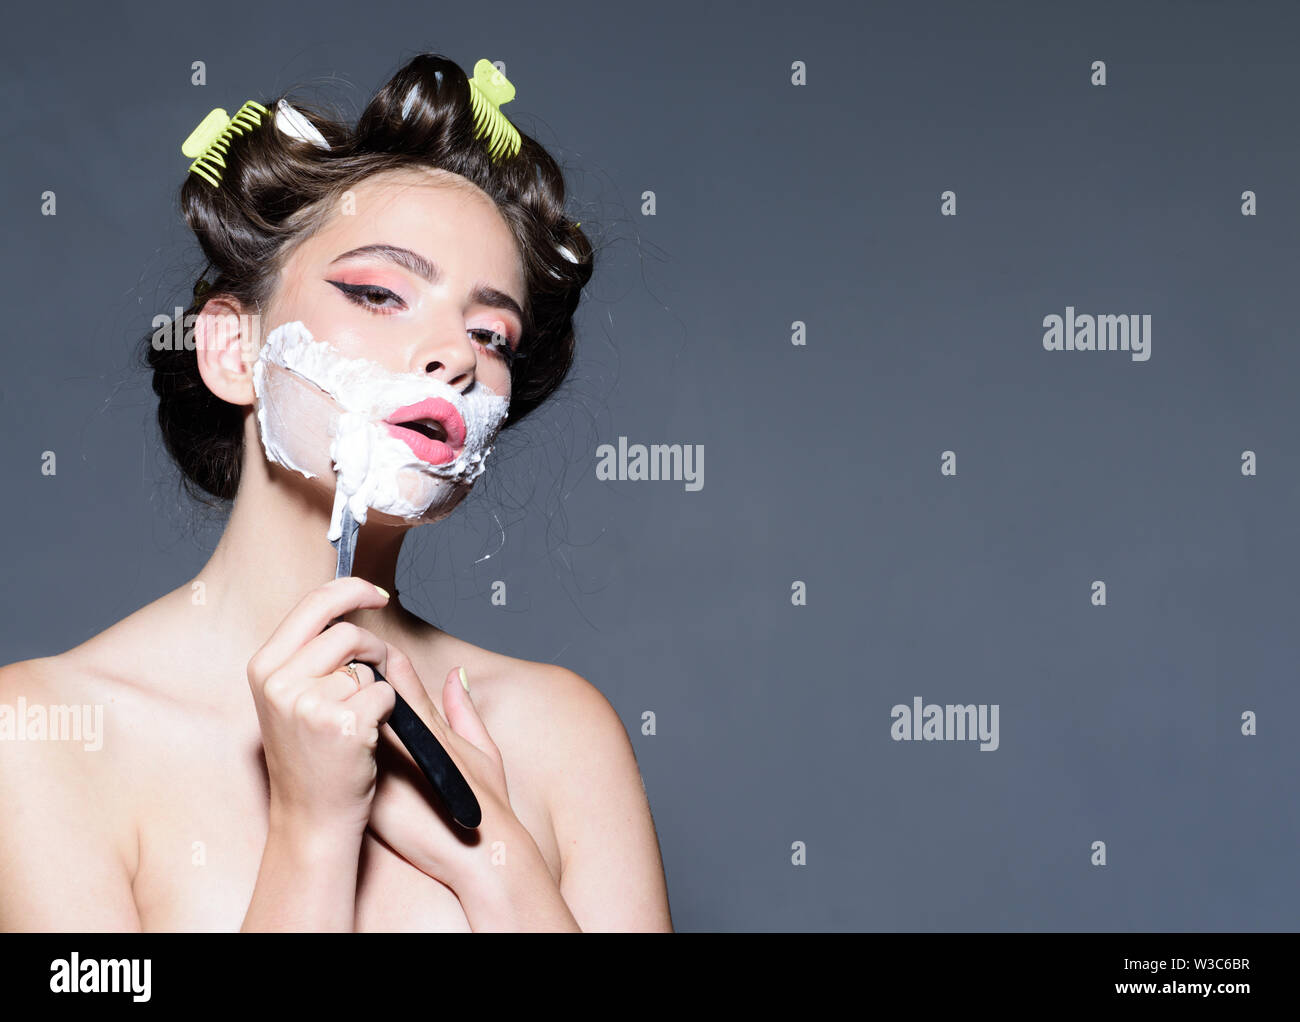 morning grooming and skincare. pinup girl with fashion hair. retro woman shaving with foam and razor blade. pin up woman with trendy makeup. pretty gi - Stock Image